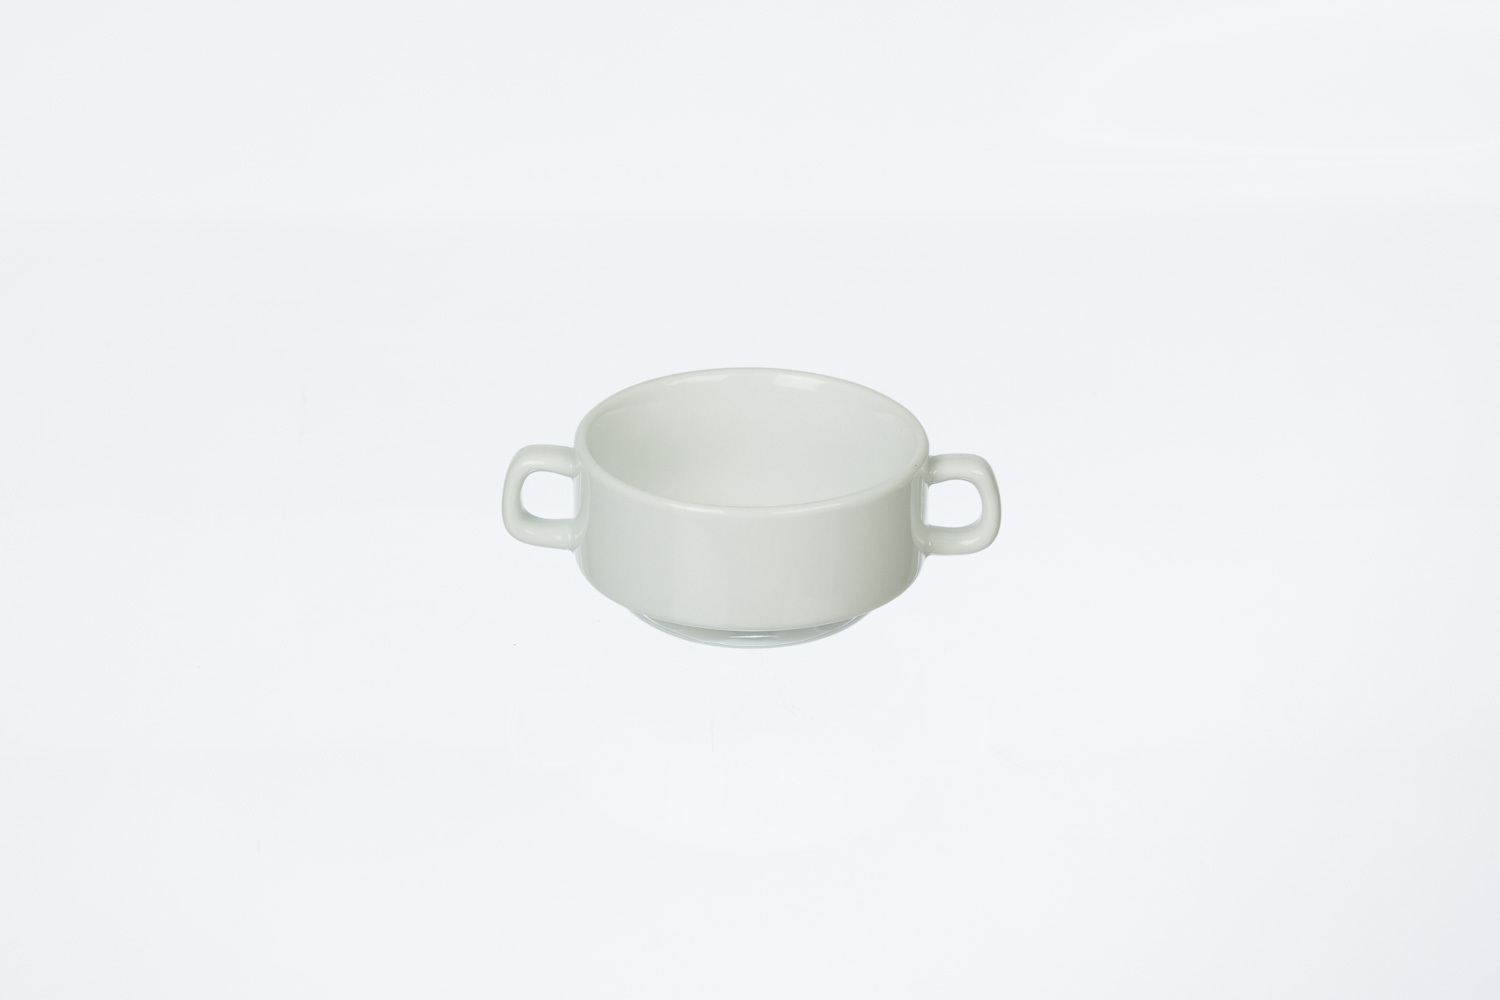 Solid White Soup Tureen with handles